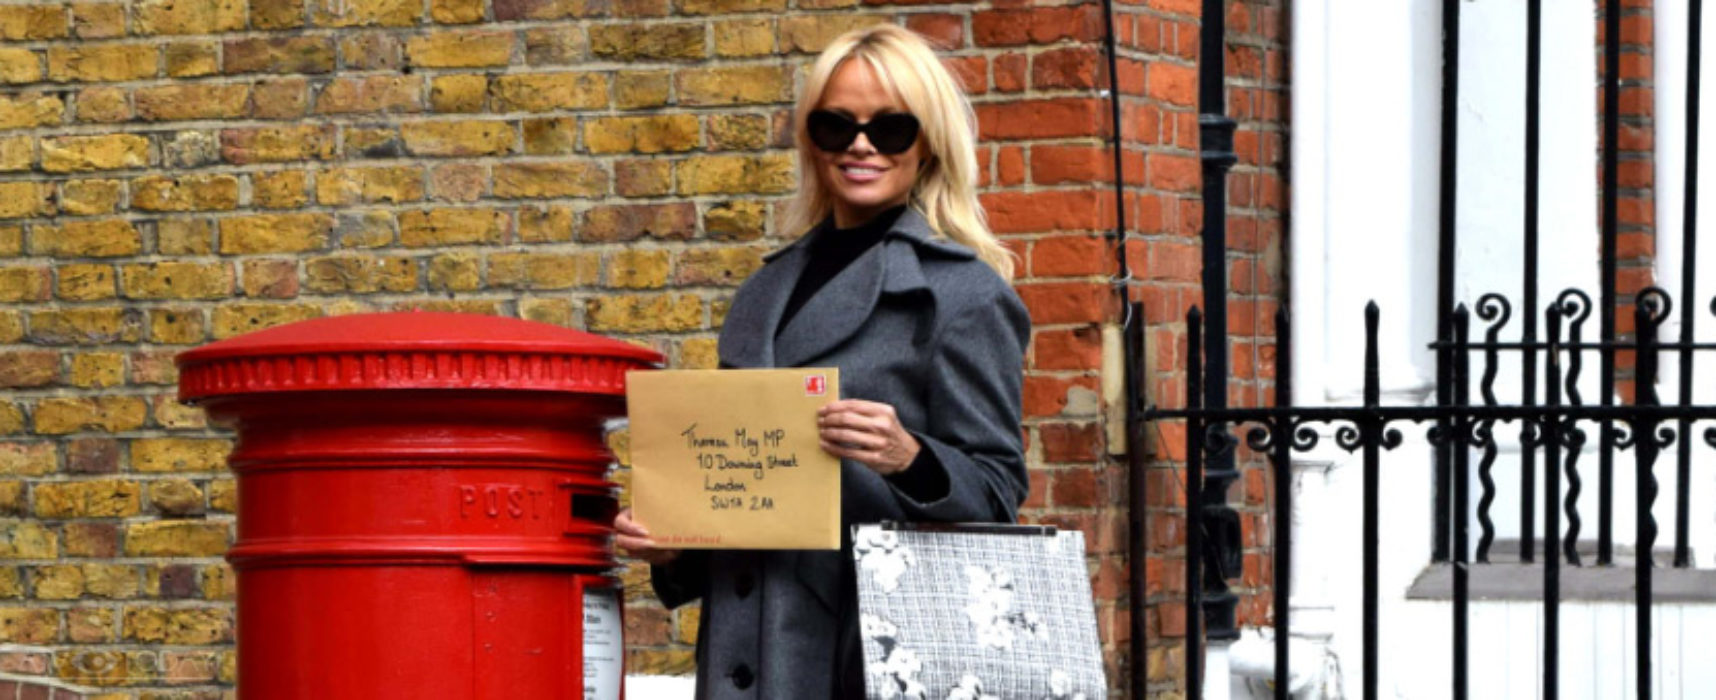 2016 PETA Person of the Year gong goes to Pamela Anderson